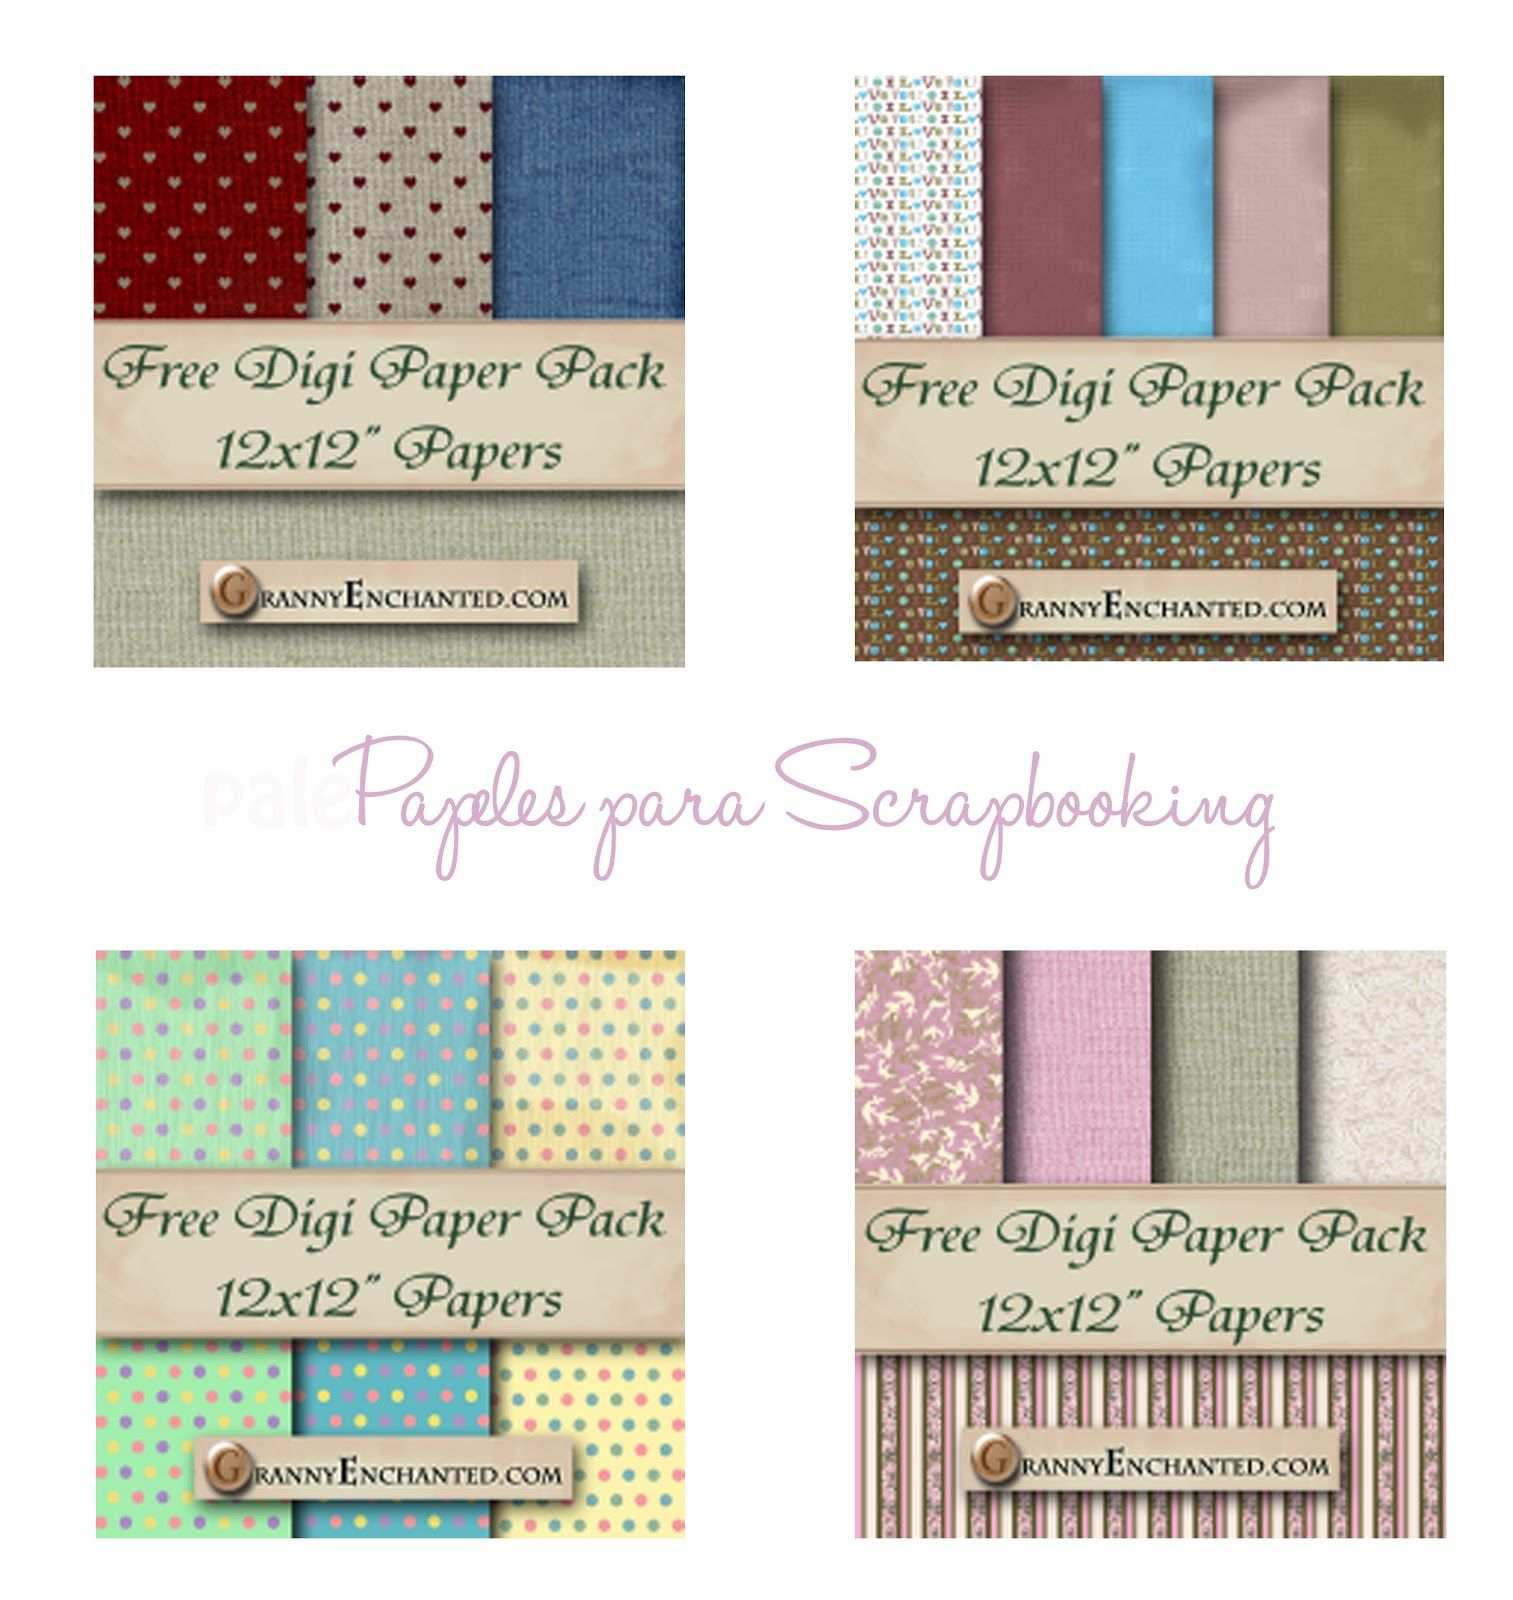 Scrapbook ideas video download - Check Out My Scrapbooking Video Page At Http Thomaskiid Blogspot Com